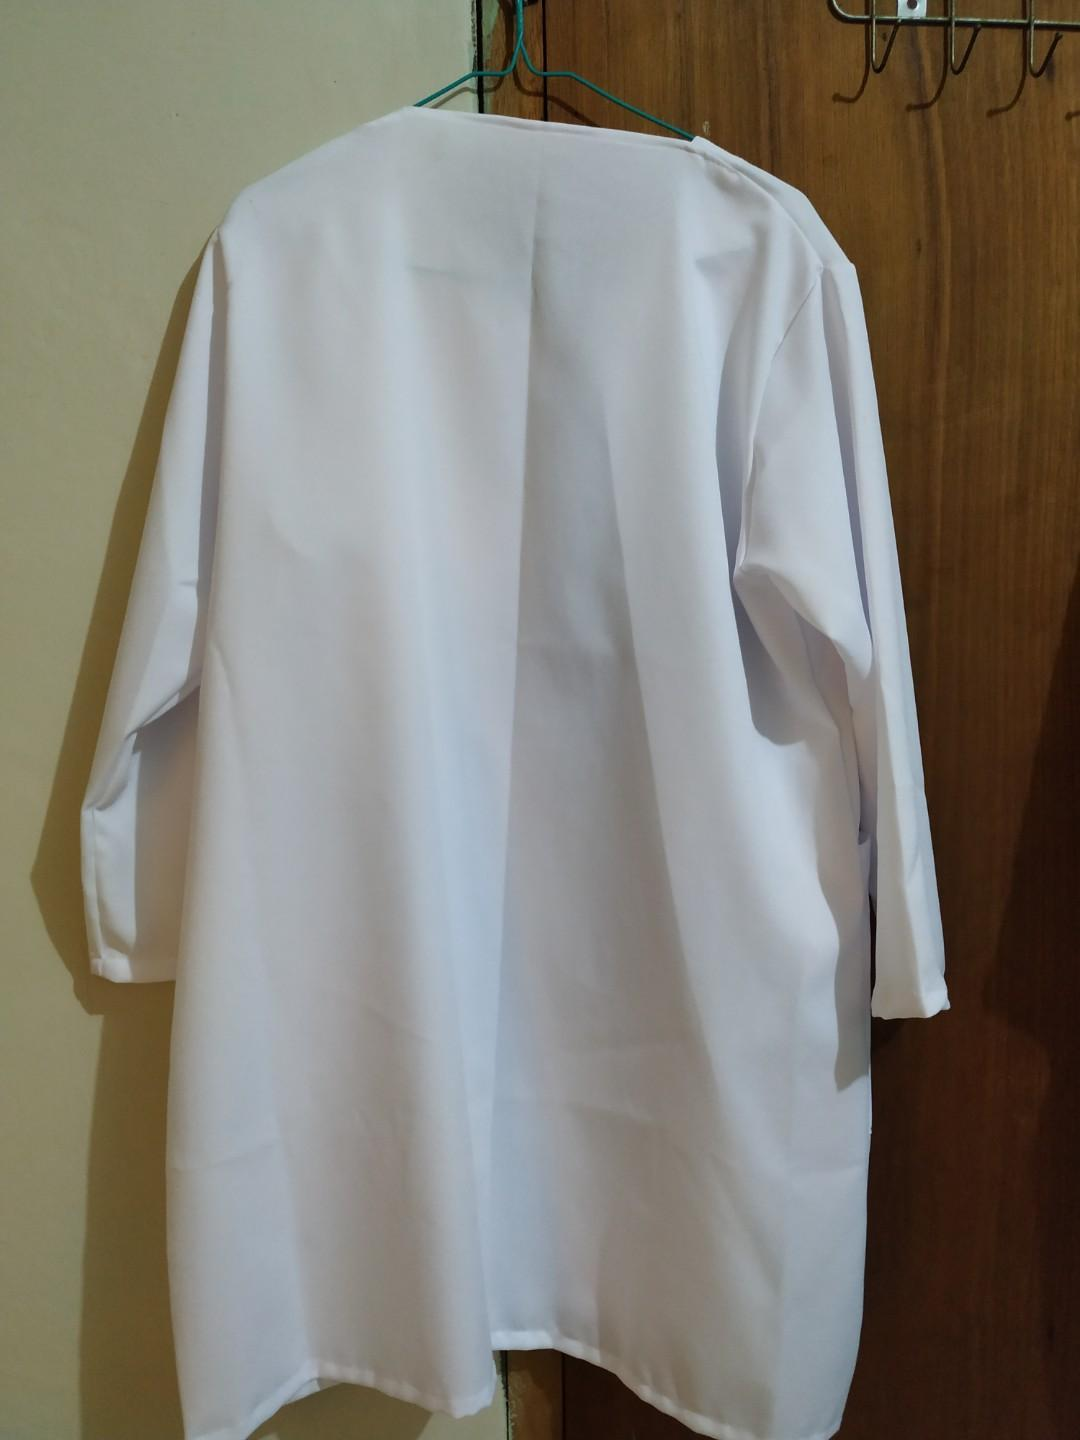 Long outer white